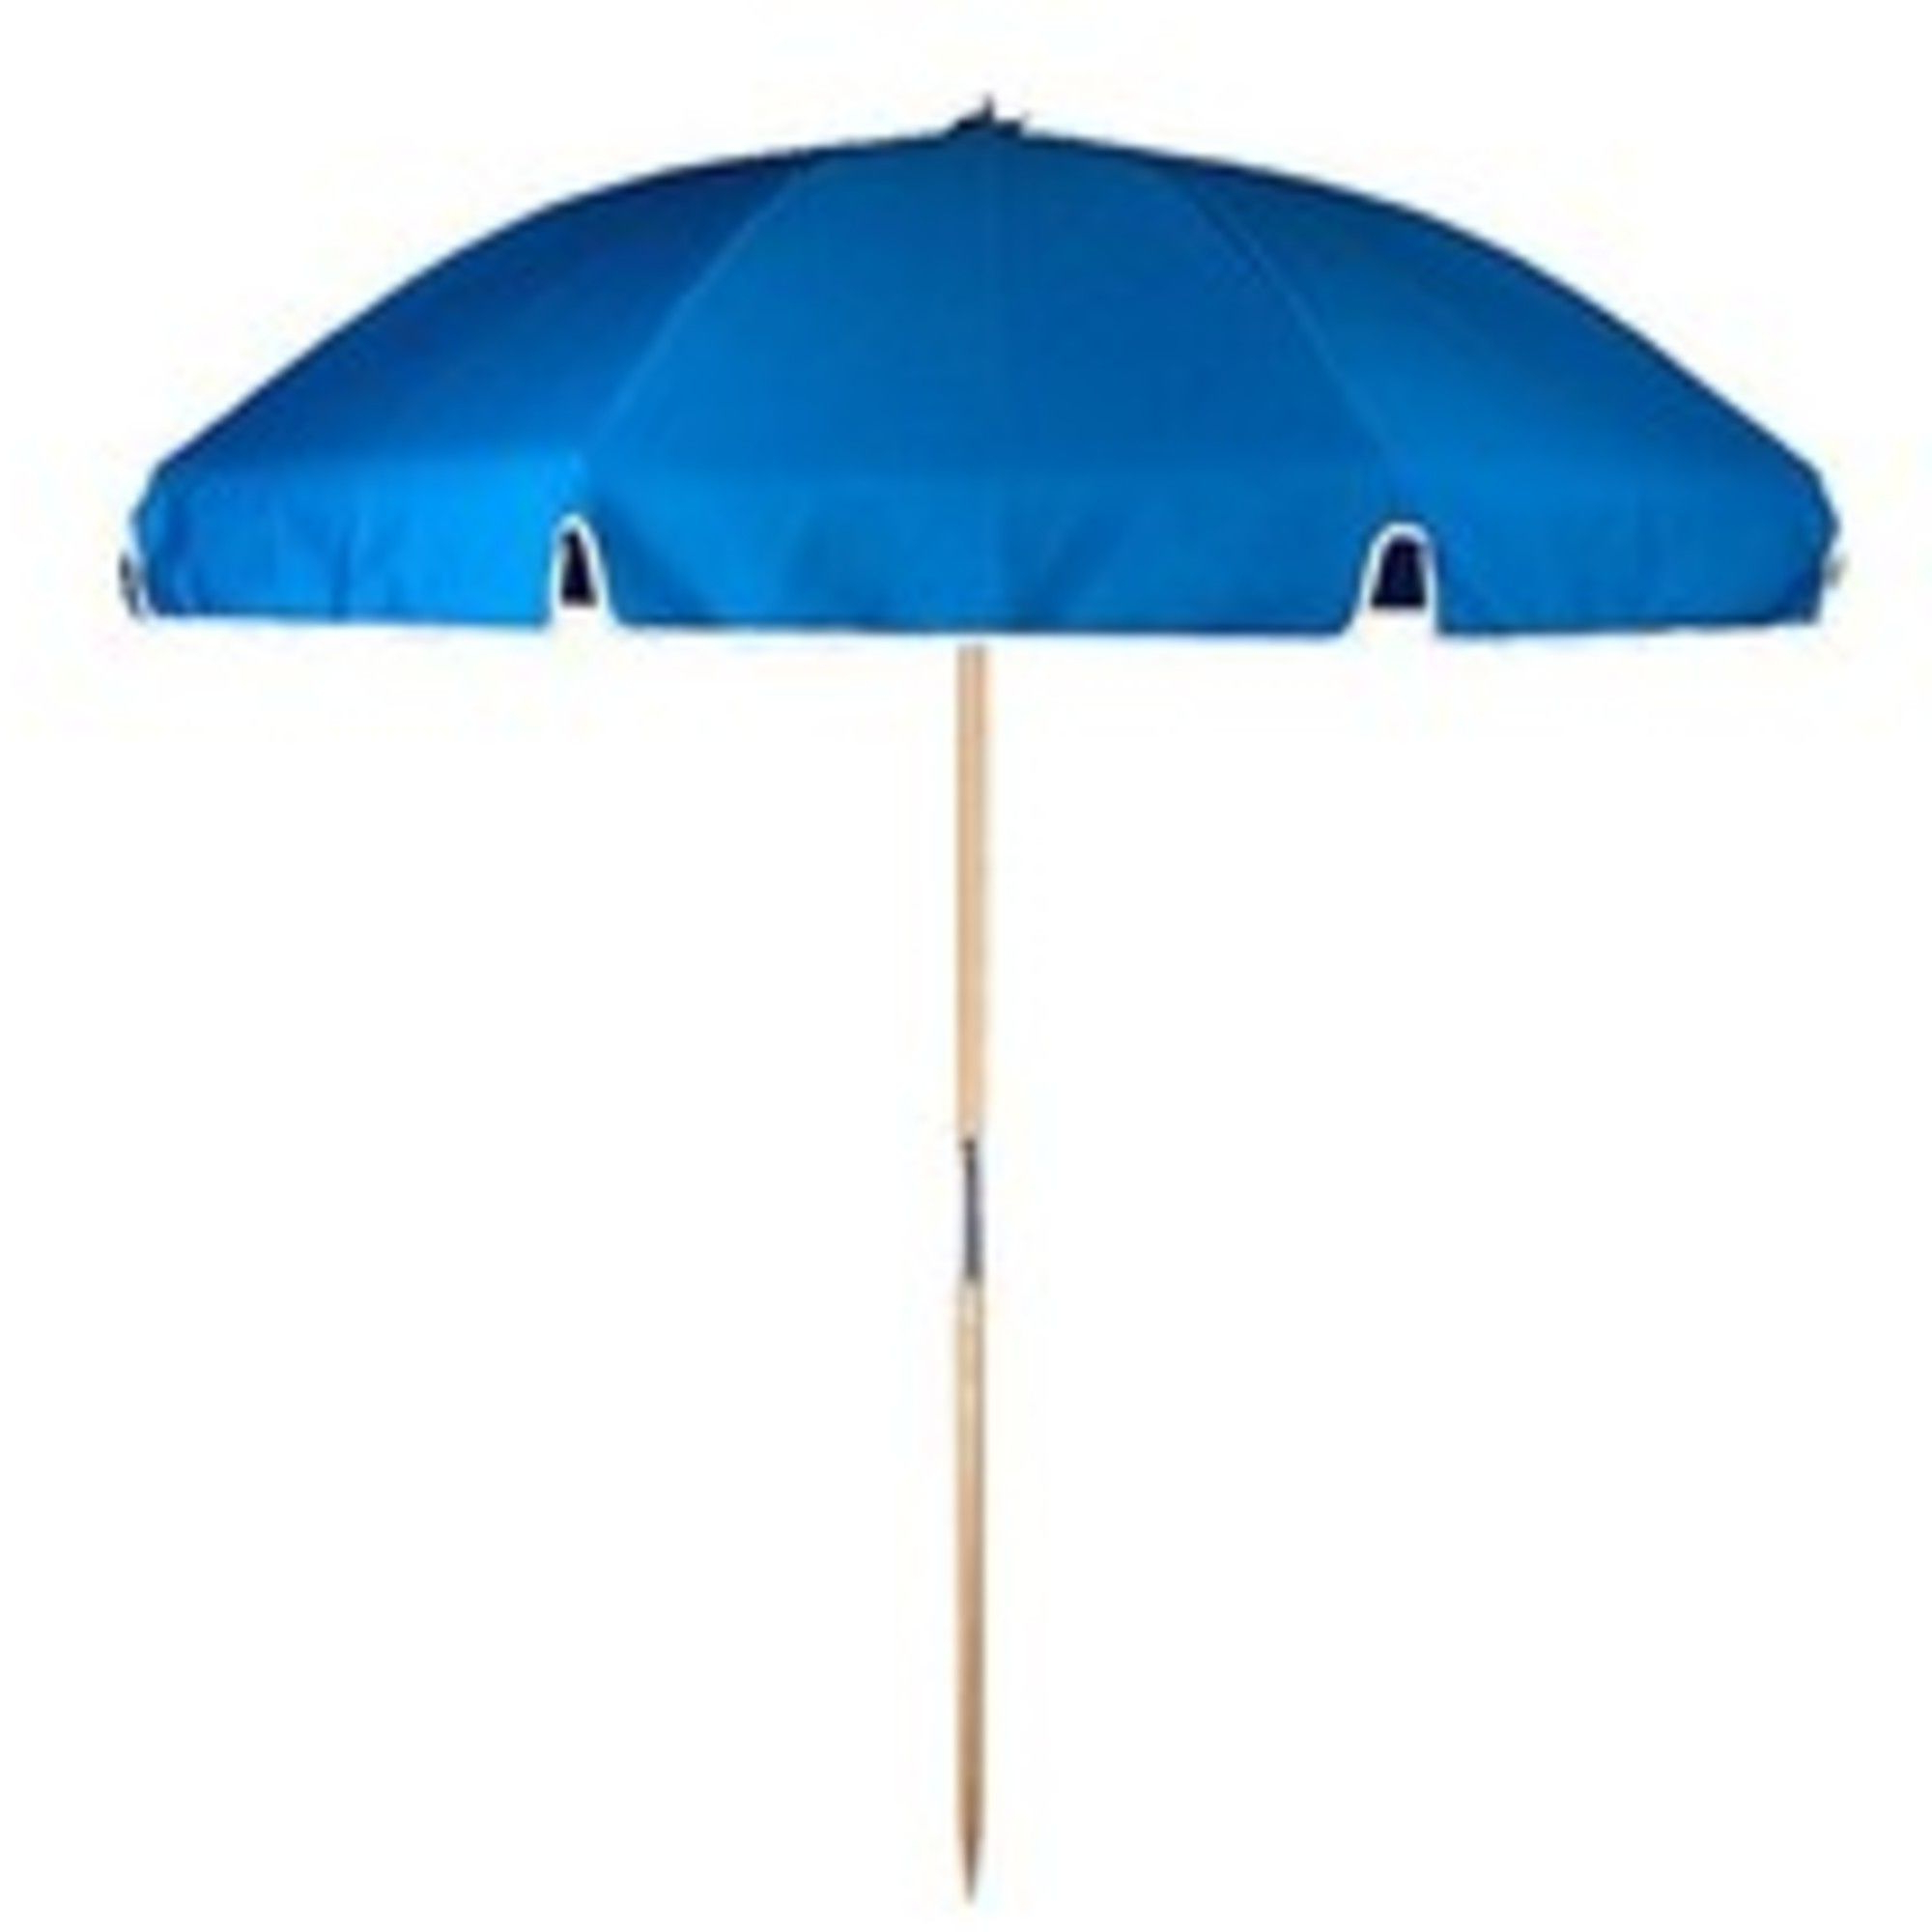 Alyson Joeshade Beach Umbrellas Intended For Popular Heavy Duty Beach Umbrella – Best Wind Resistant And Sun Shade (Gallery 3 of 20)